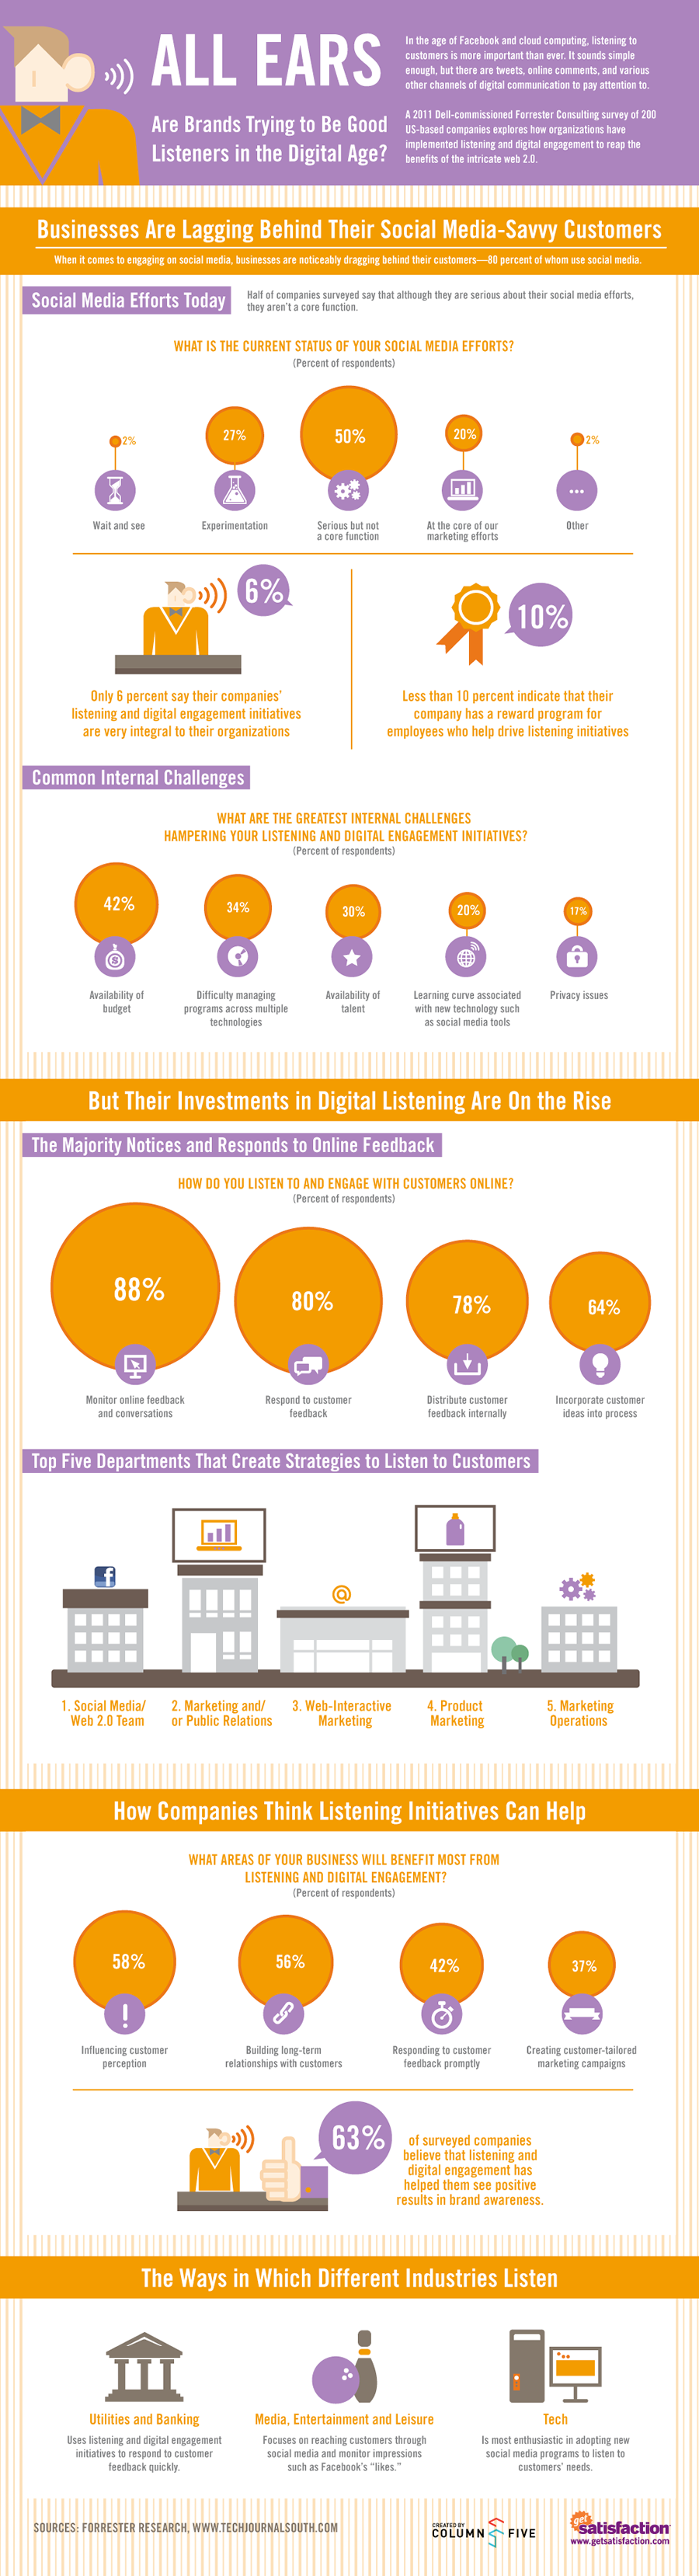 https://inblurbs.com/wp-content/uploads/2012/08/How_Brands_Can_Listen_in_the_Digital_Age-full1.png